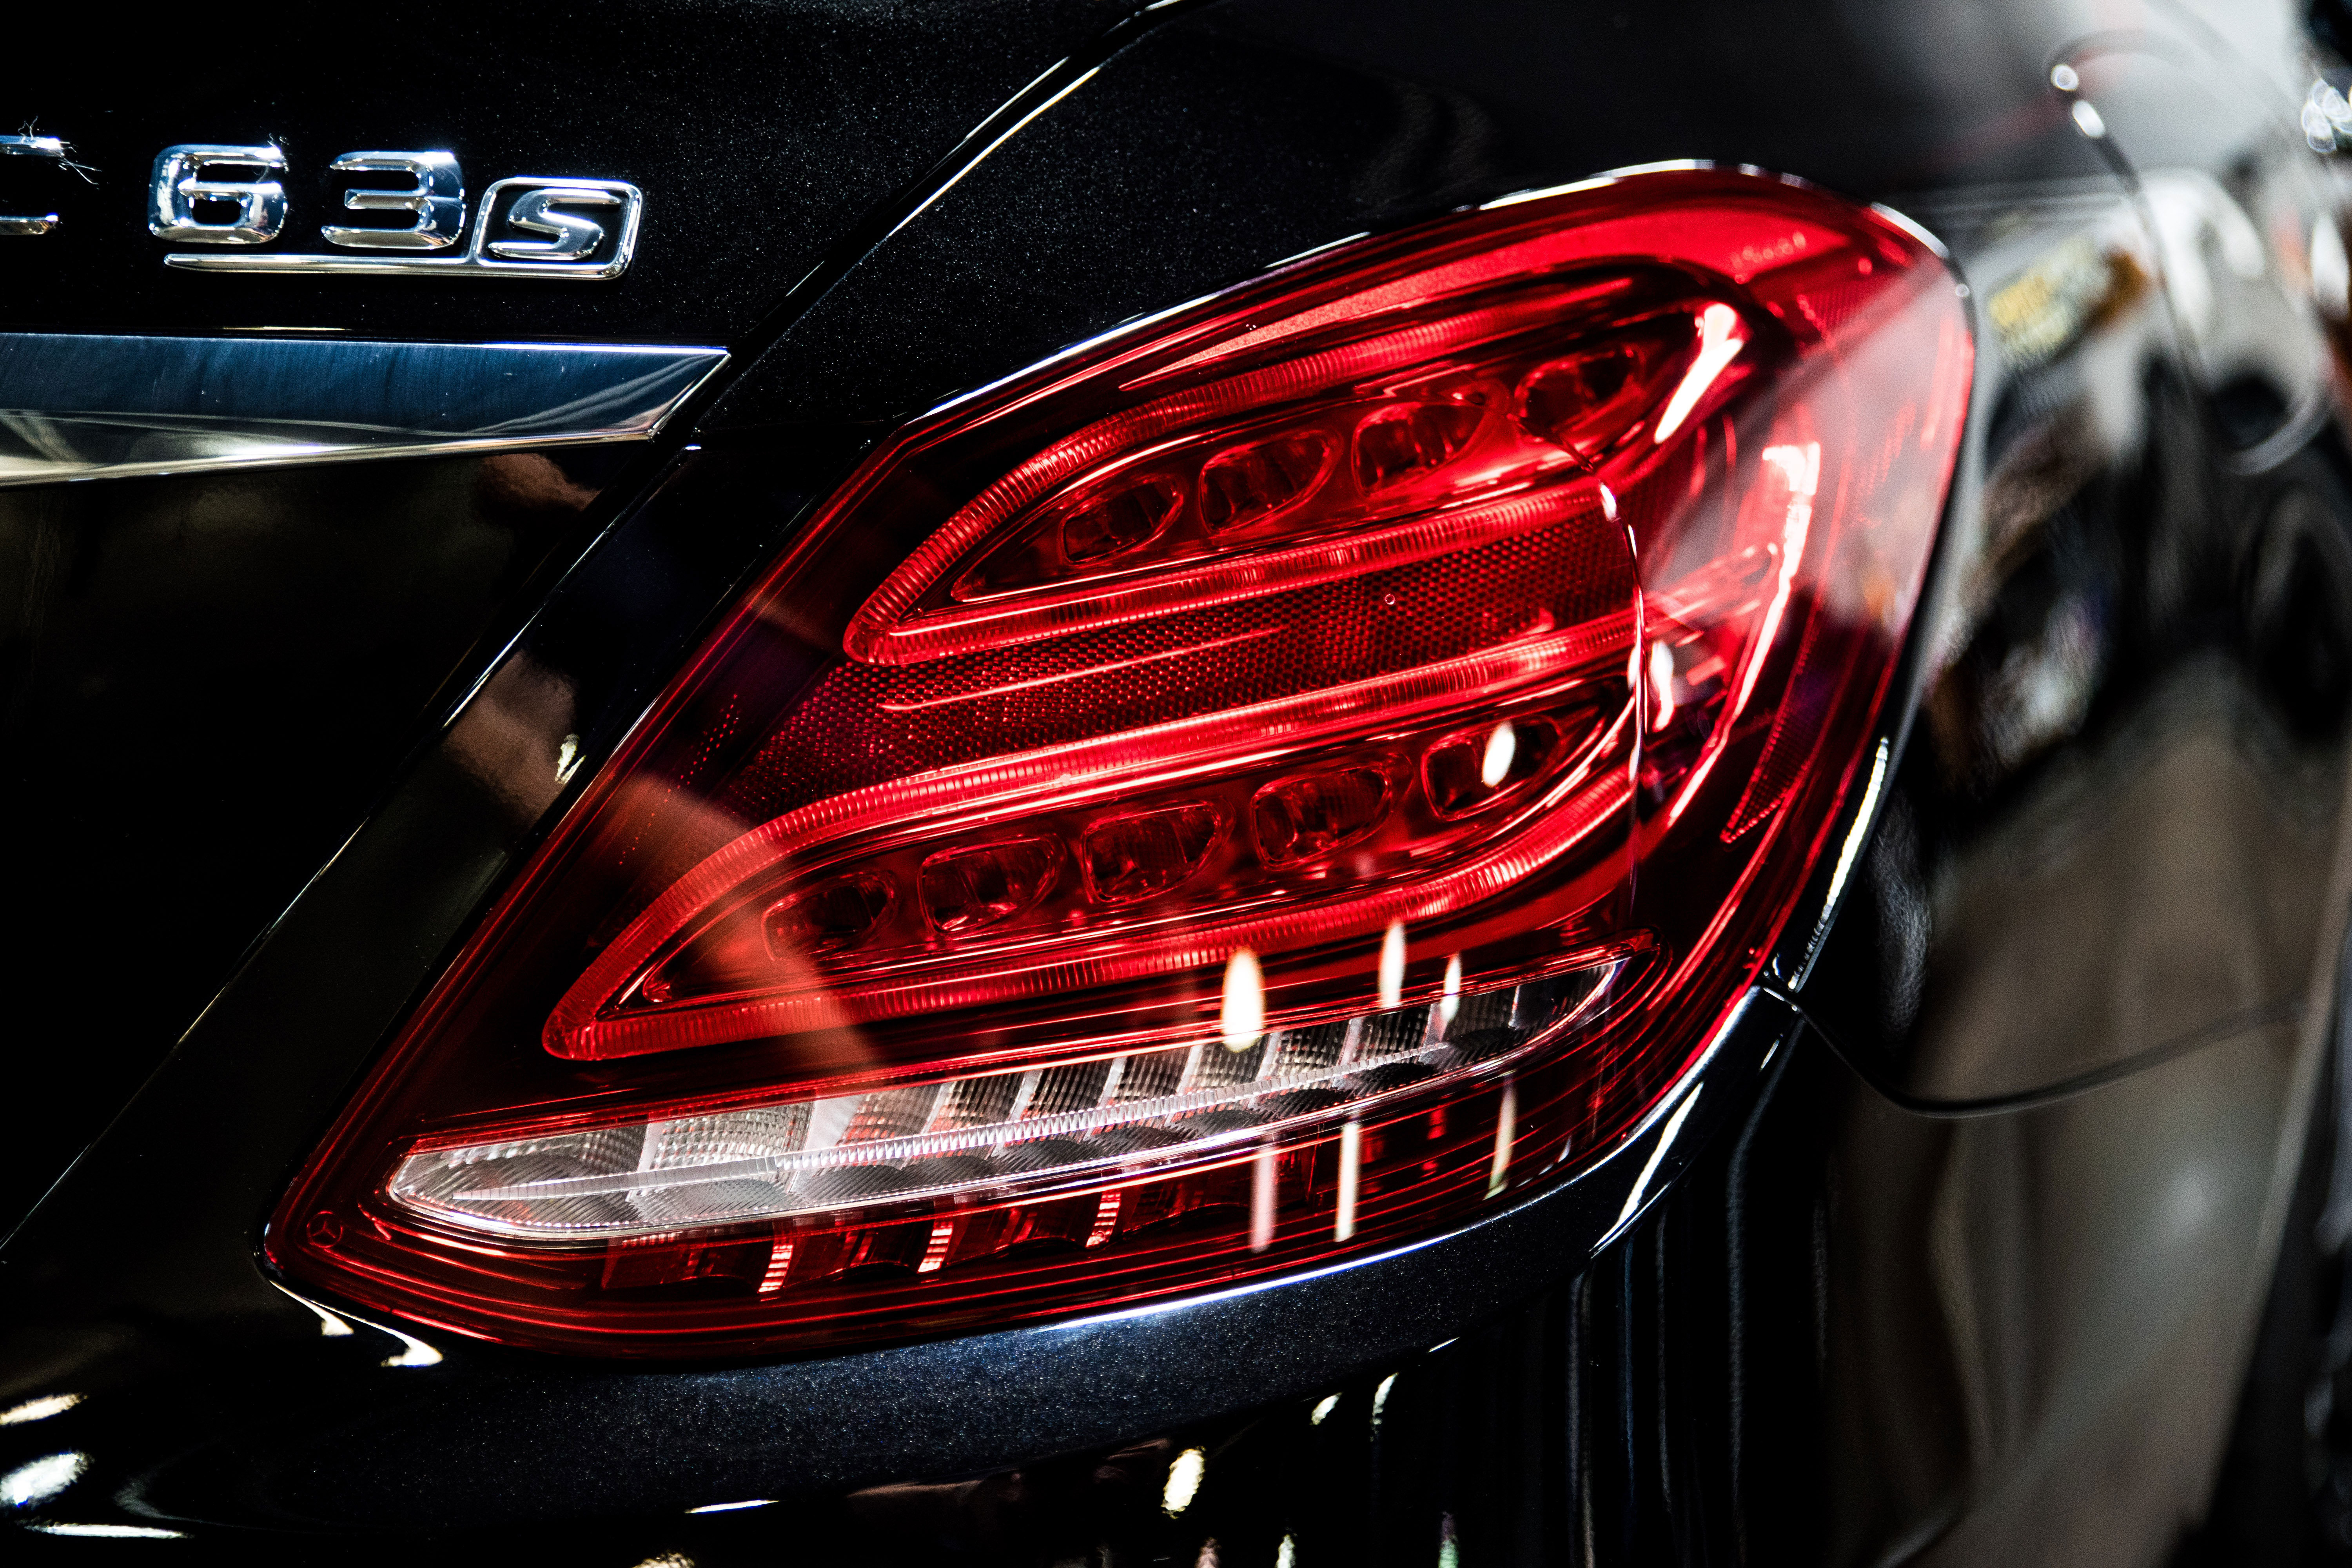 taillights-clear-wrapped-ppf